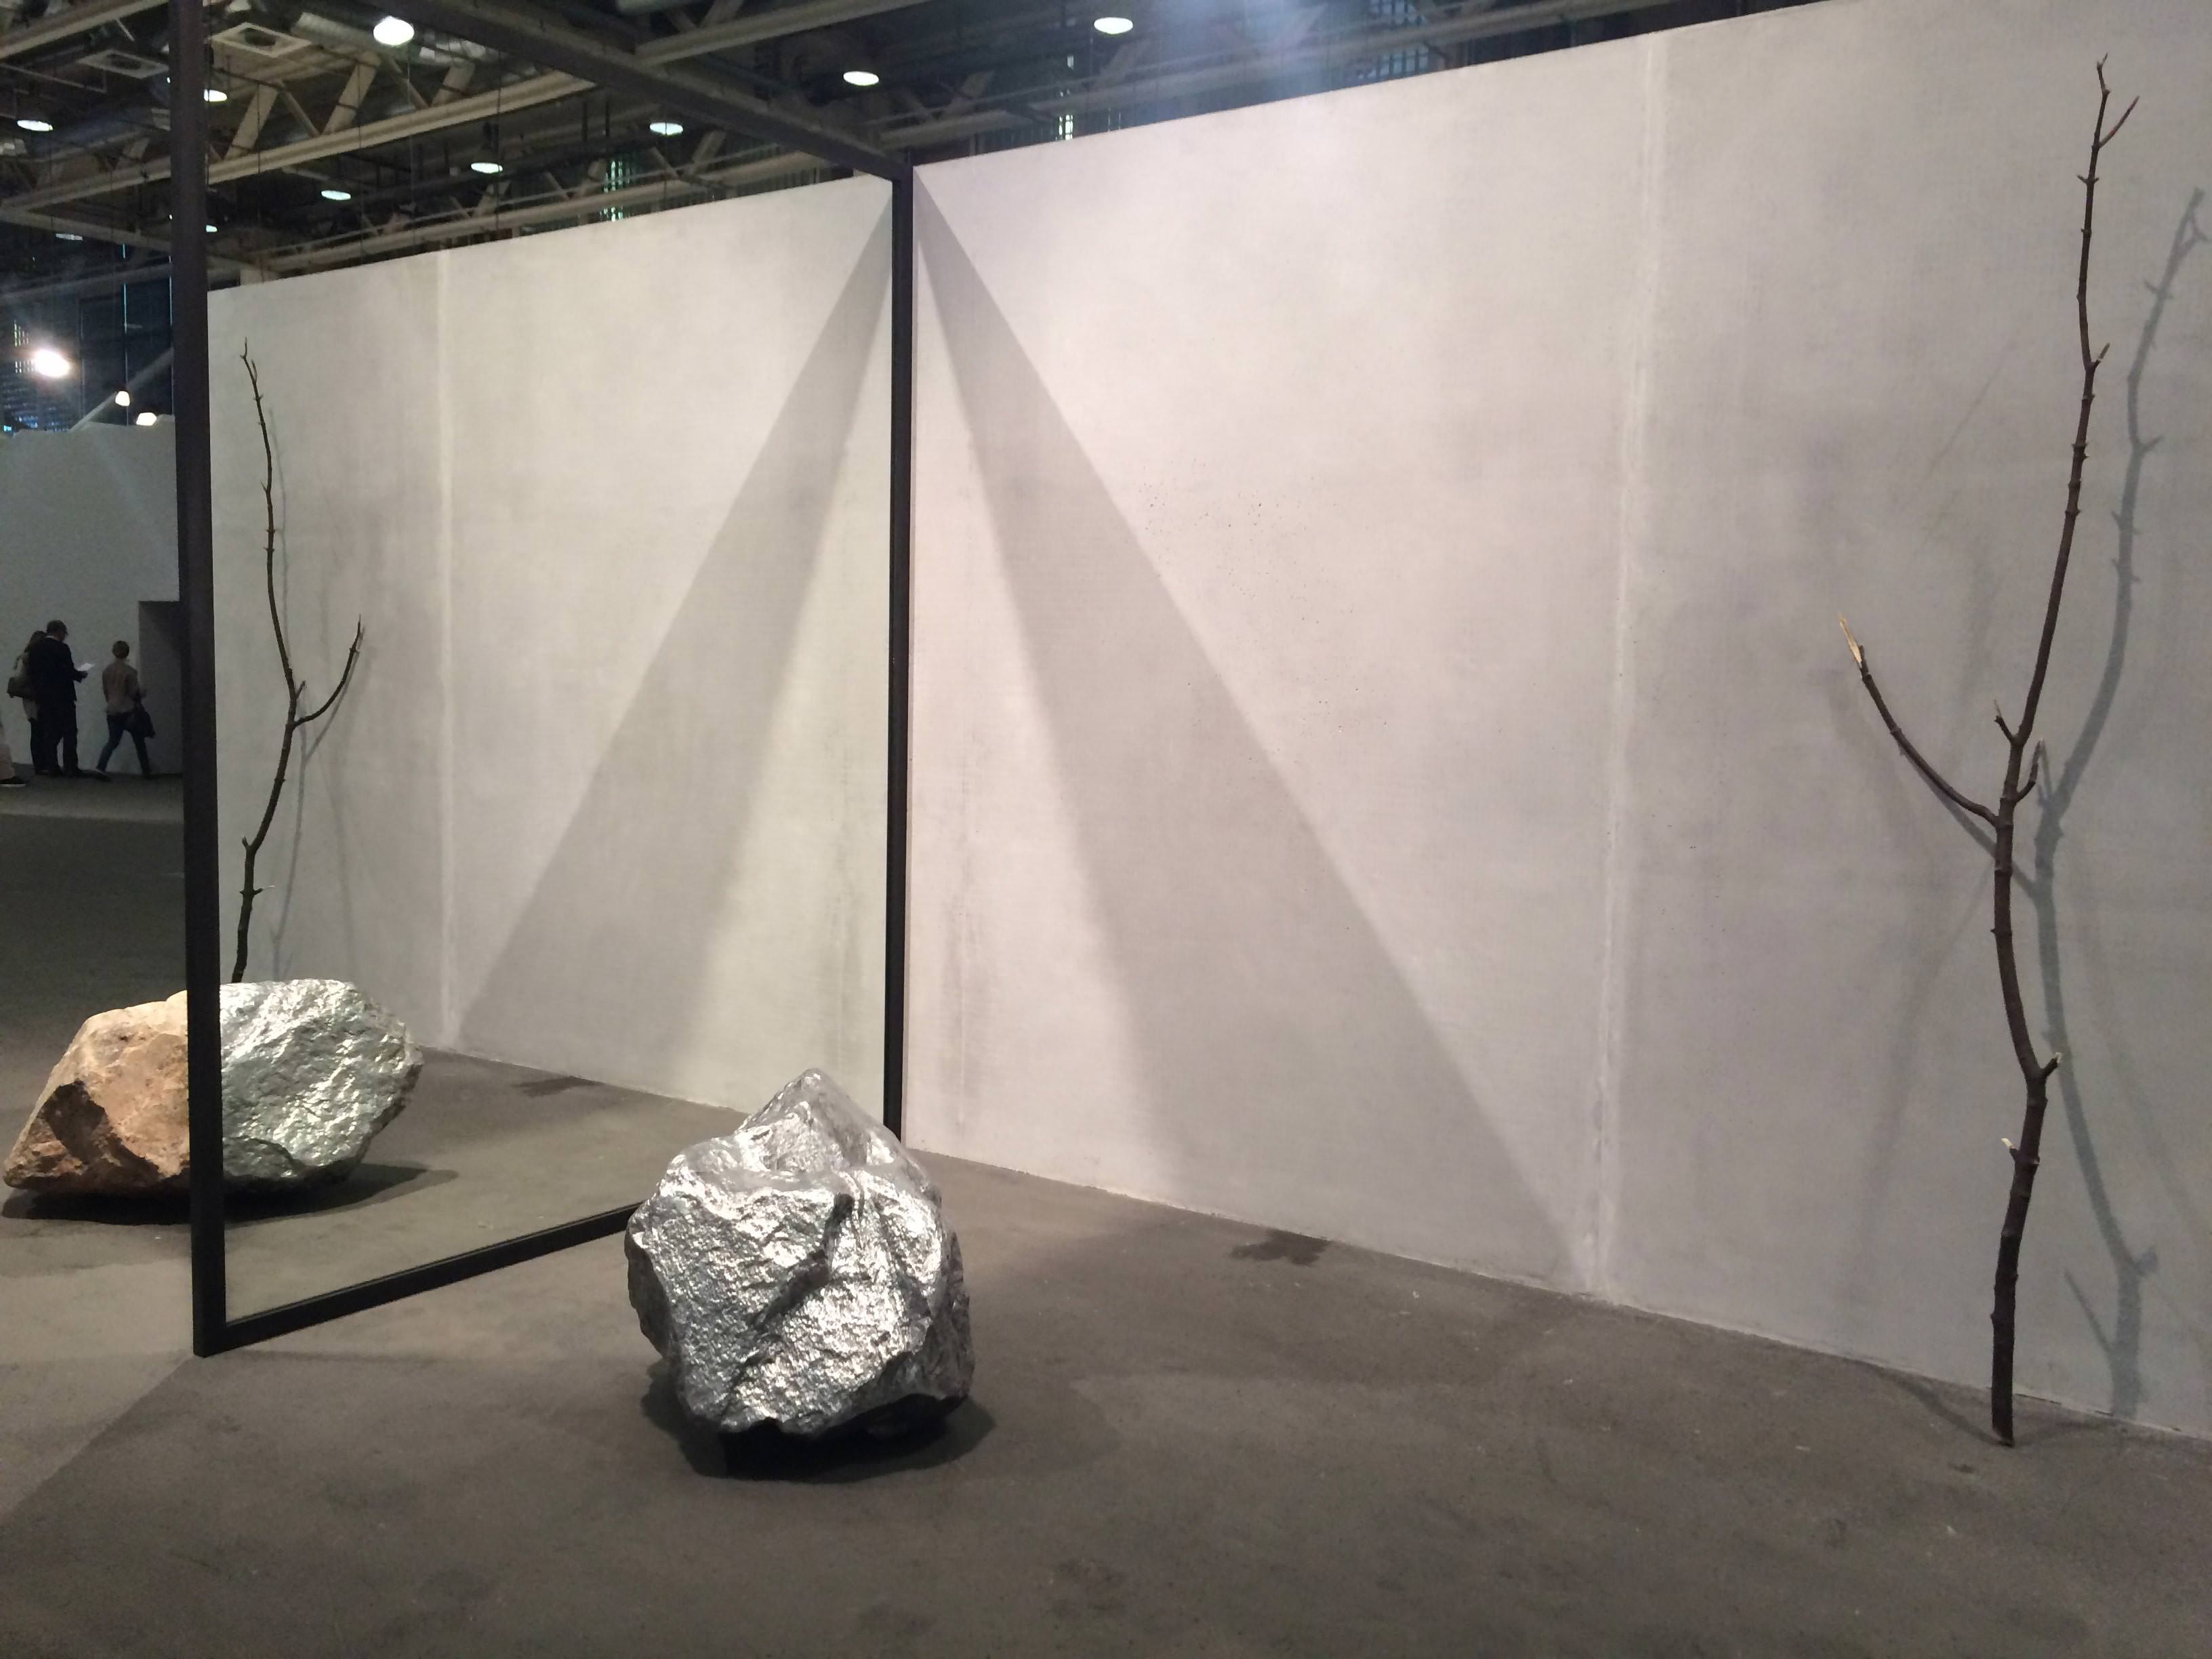 Out of Ousia(2016) by Alicja Kwade,303 Gallery, König Gallery and Kamel Mennour gallery.   A BIT OF POETRY IN A BRUTAL (CONCRETE) WORLD   We found poetry with Alicja Kwadeand her installation that plays with our perceptions in a game of mirrors. Depending on the perspective, a natural rock gets confused with its aluminium replica… Aged 37 the star status of the Polish artist, now living in Berlin, is confirmed, if it really needed to be. The same goes for Argentinian Pablo Bronstein,aged 39. His series of inks and watercolours on canvas proffer a panorama of imaginary and sinister Roman monuments, brilliantly combining baroque, antique, Viennese fin de siècle and 1930s inspirations.